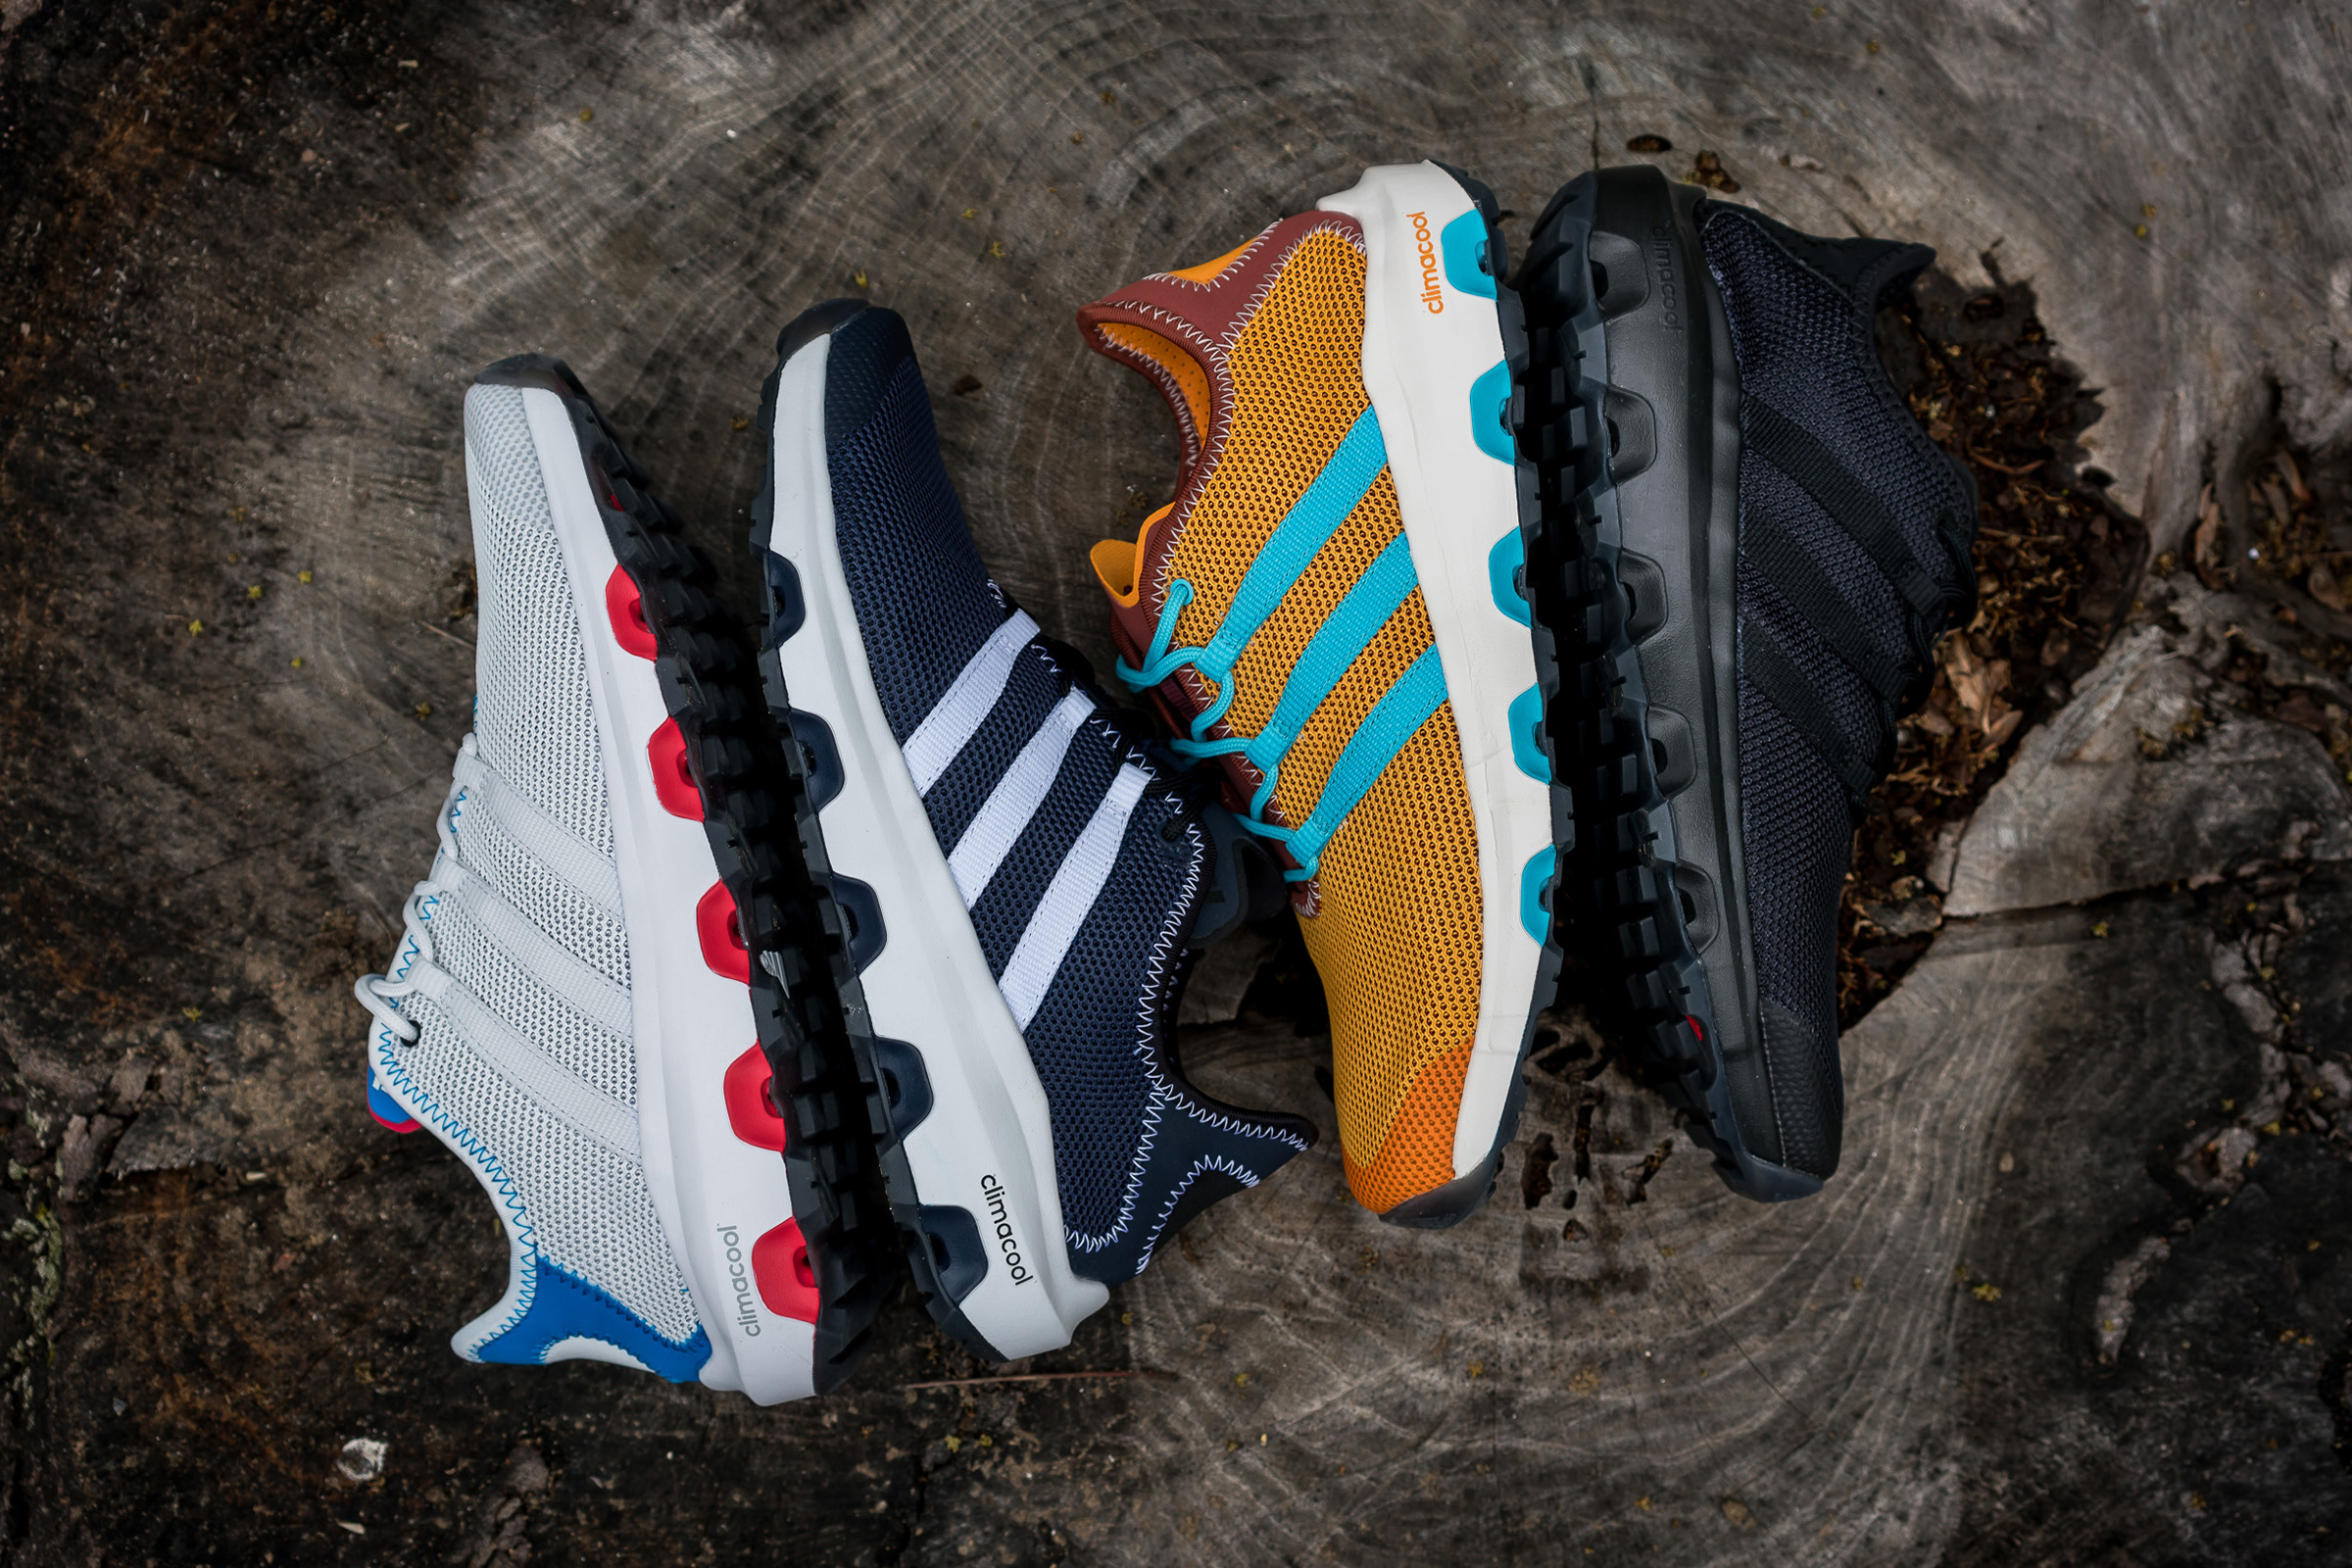 The Outdoor Summer Climacool Hiking Done Adidas Get Some With BoQrCxedW